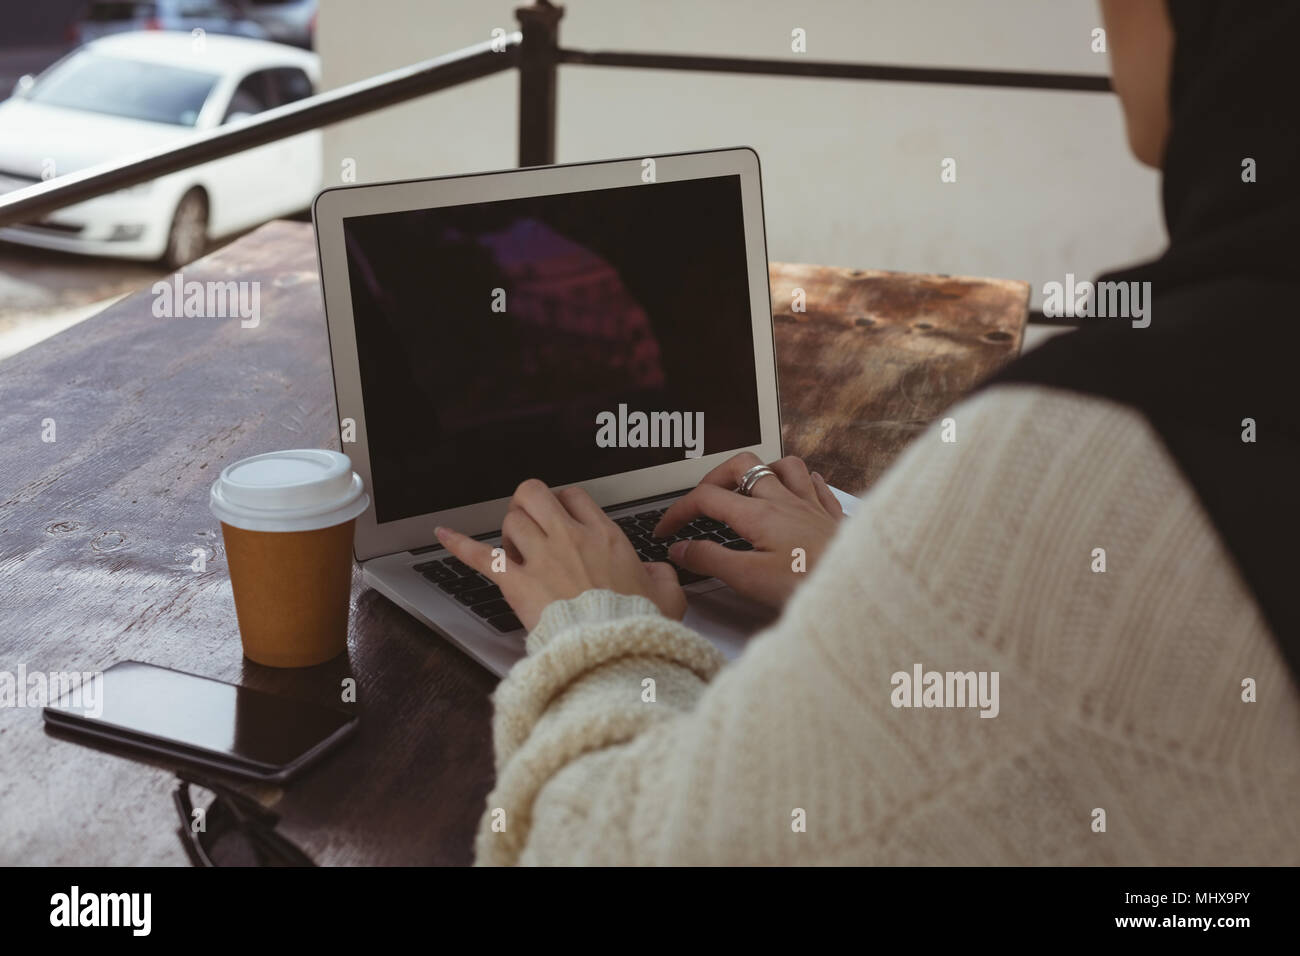 Urban hijab woman using laptop in pavement cafe - Stock Image